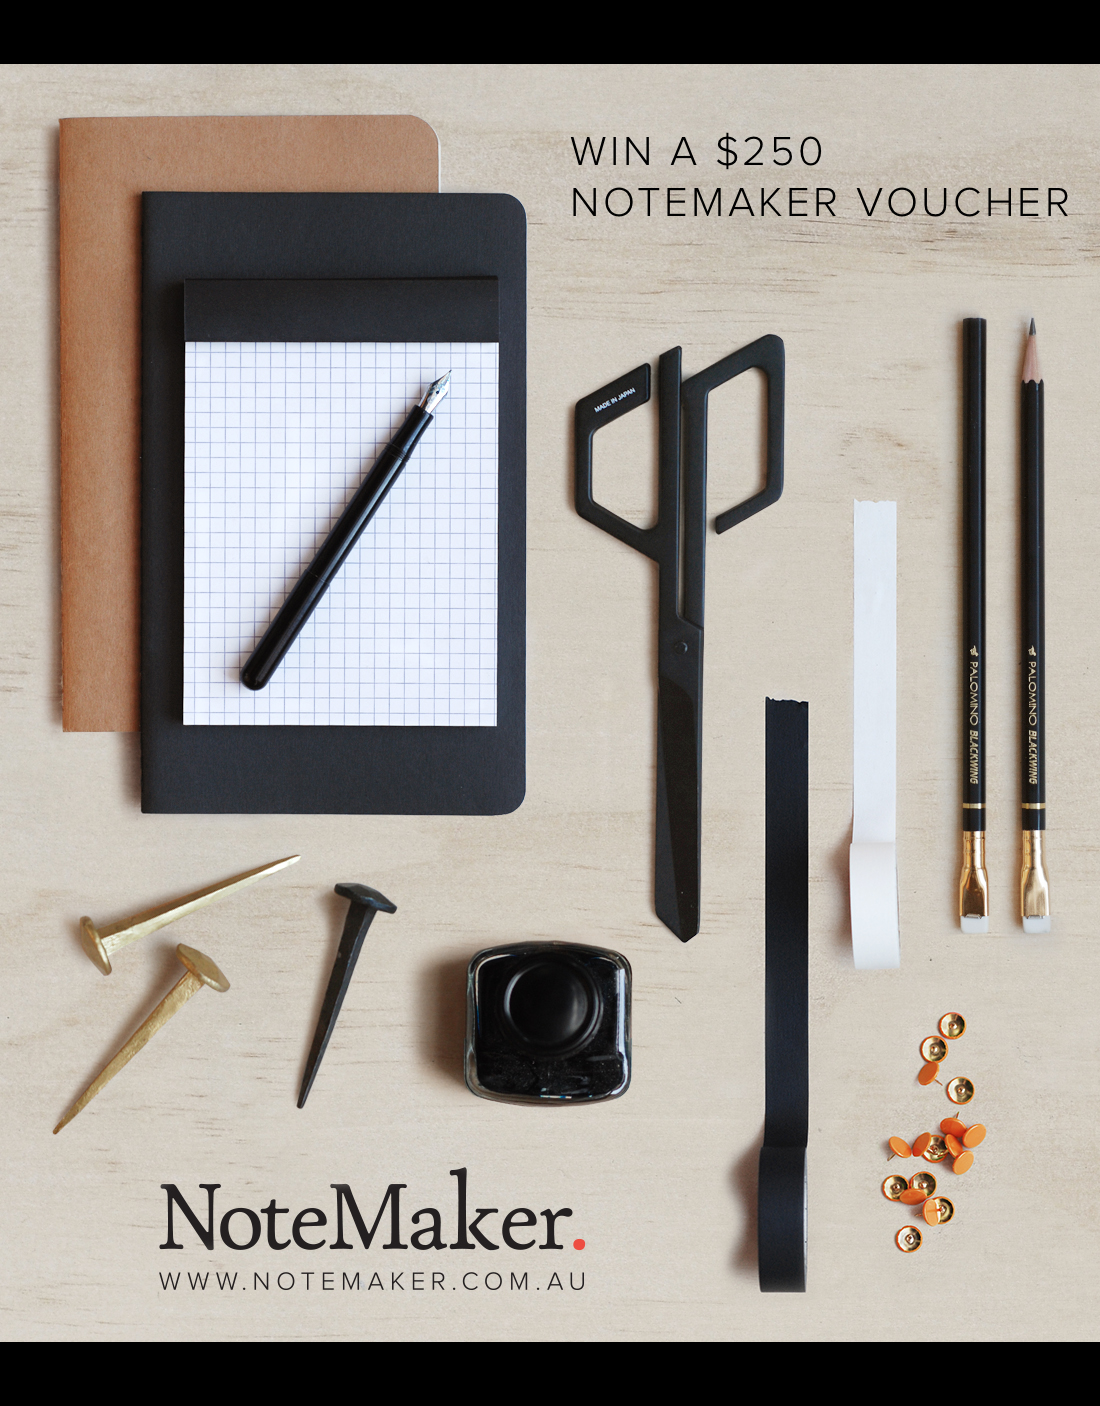 NoteMaker Promo